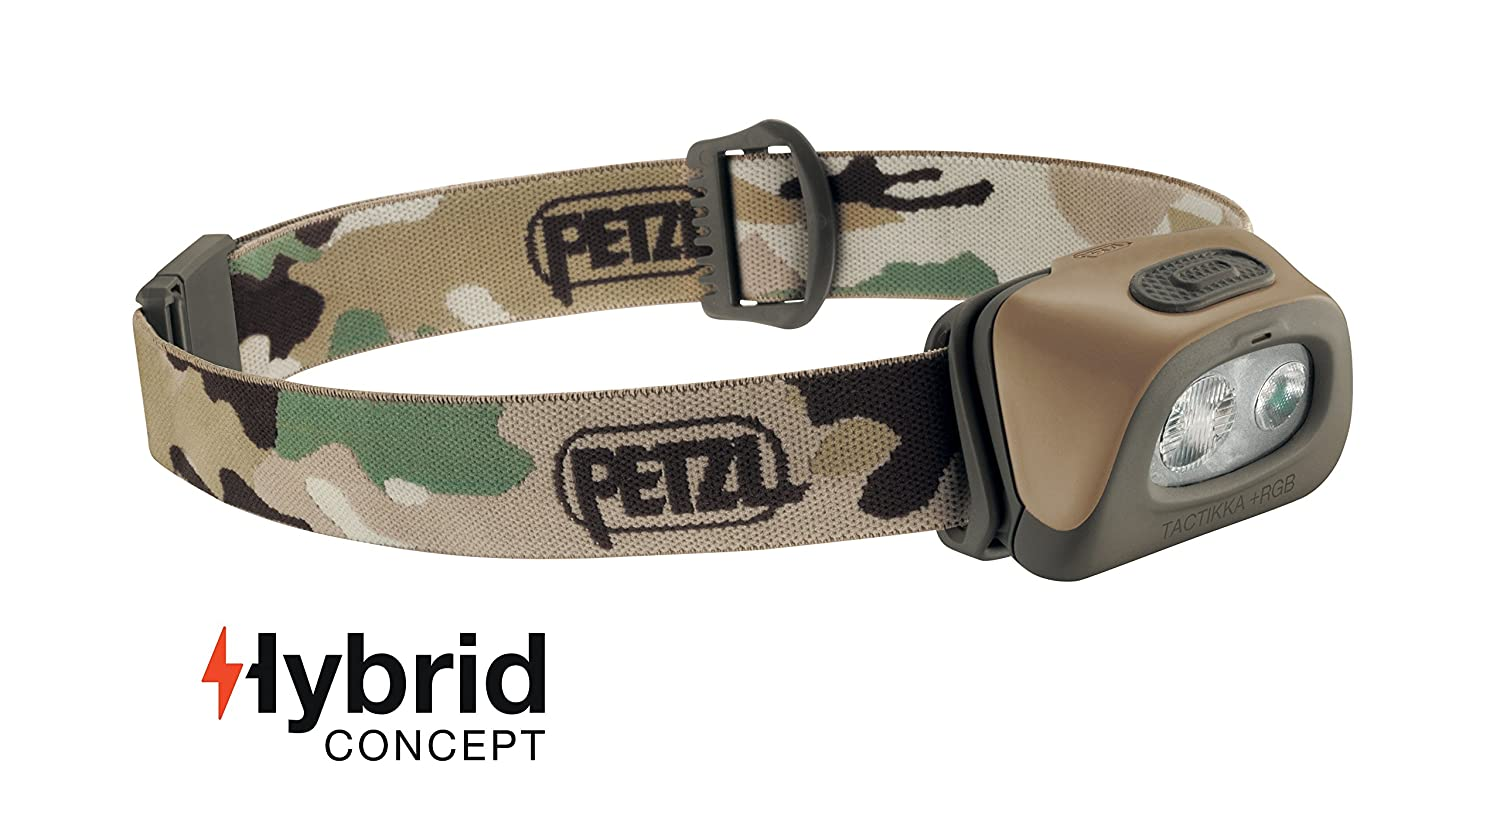 PETZL – TACTIKKA RGB Headlamp, 250 Lumens, Red-Green-Blue Lighting